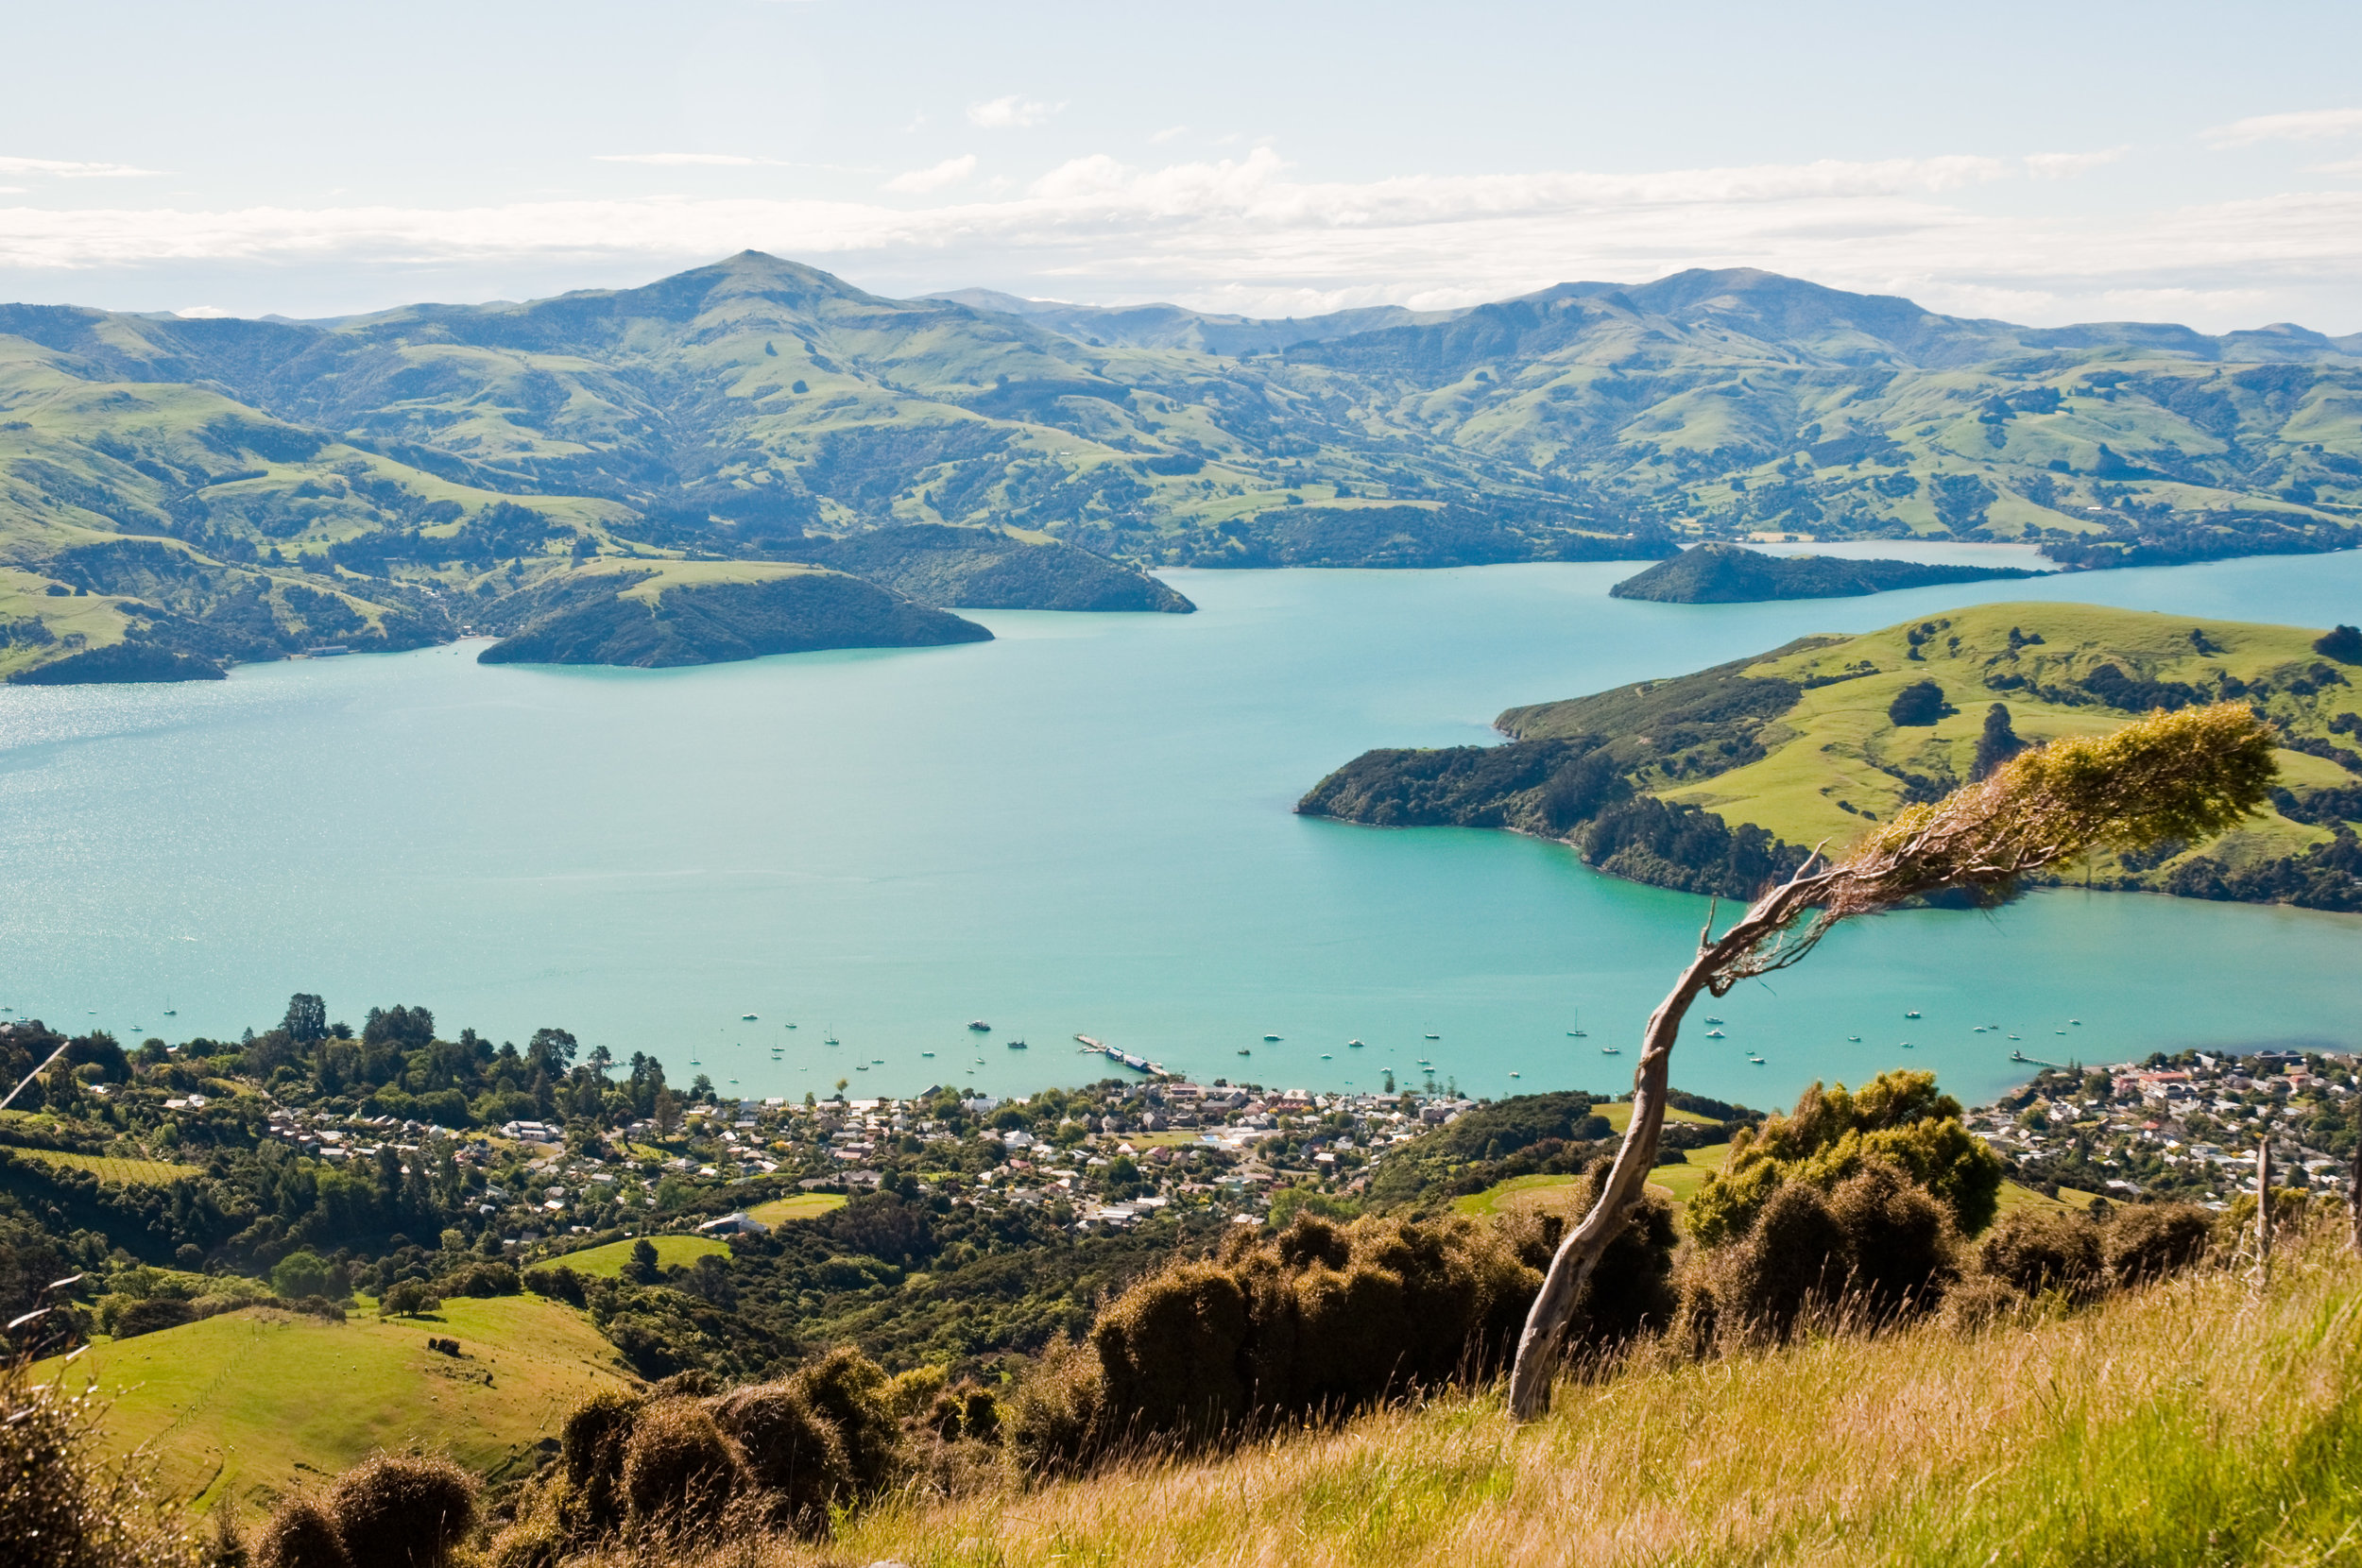 Akaroa,_Canterbury,_New_Zealand_from_Stony_Bay_Road,_21st._Nov._2010_-_Flickr_-_PhillipC.jpg